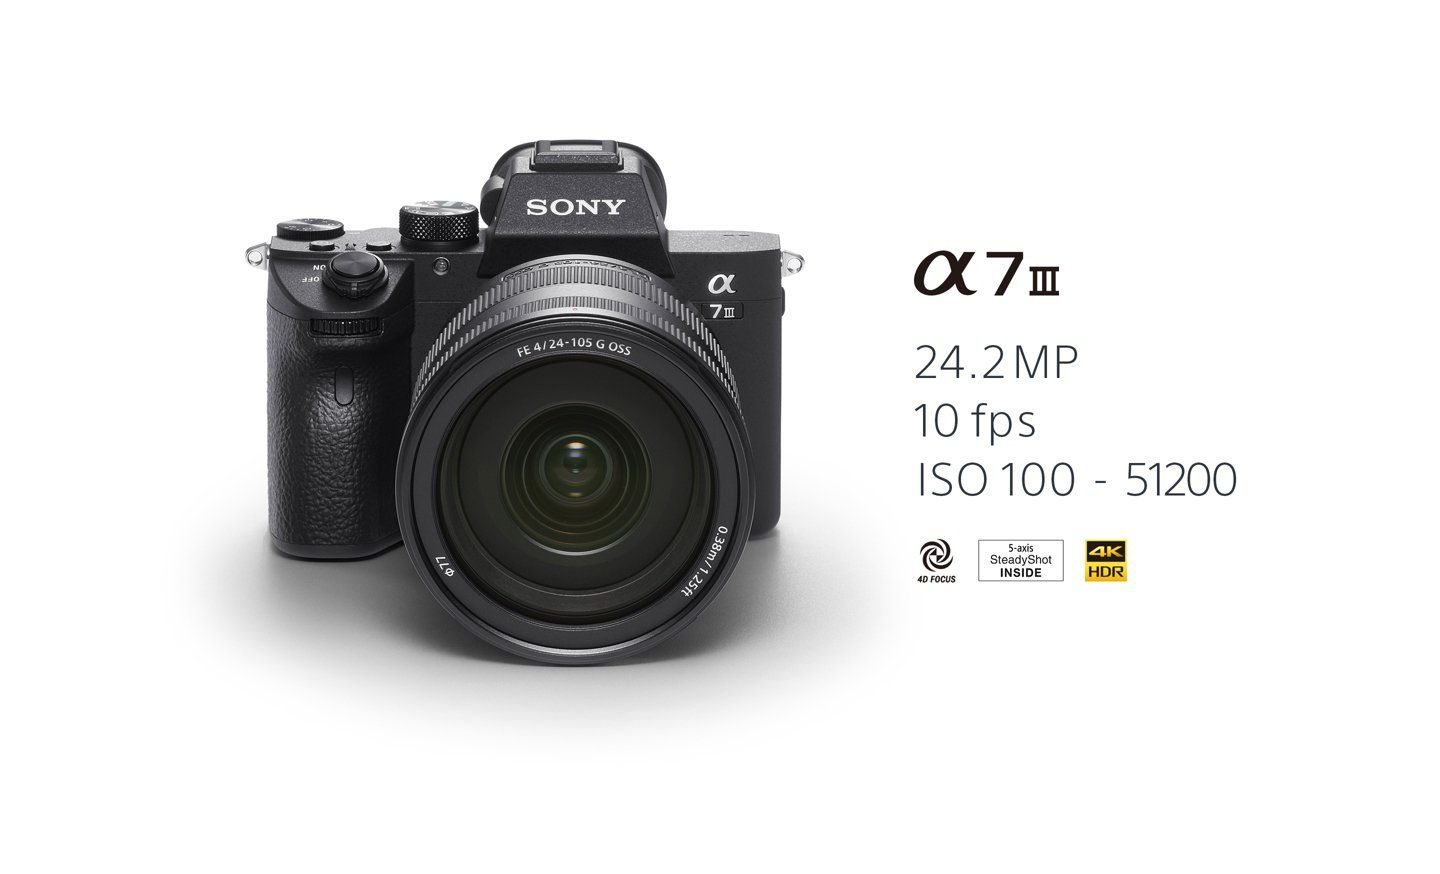 Sony A7 III full-frame mirrorless camera launched in India